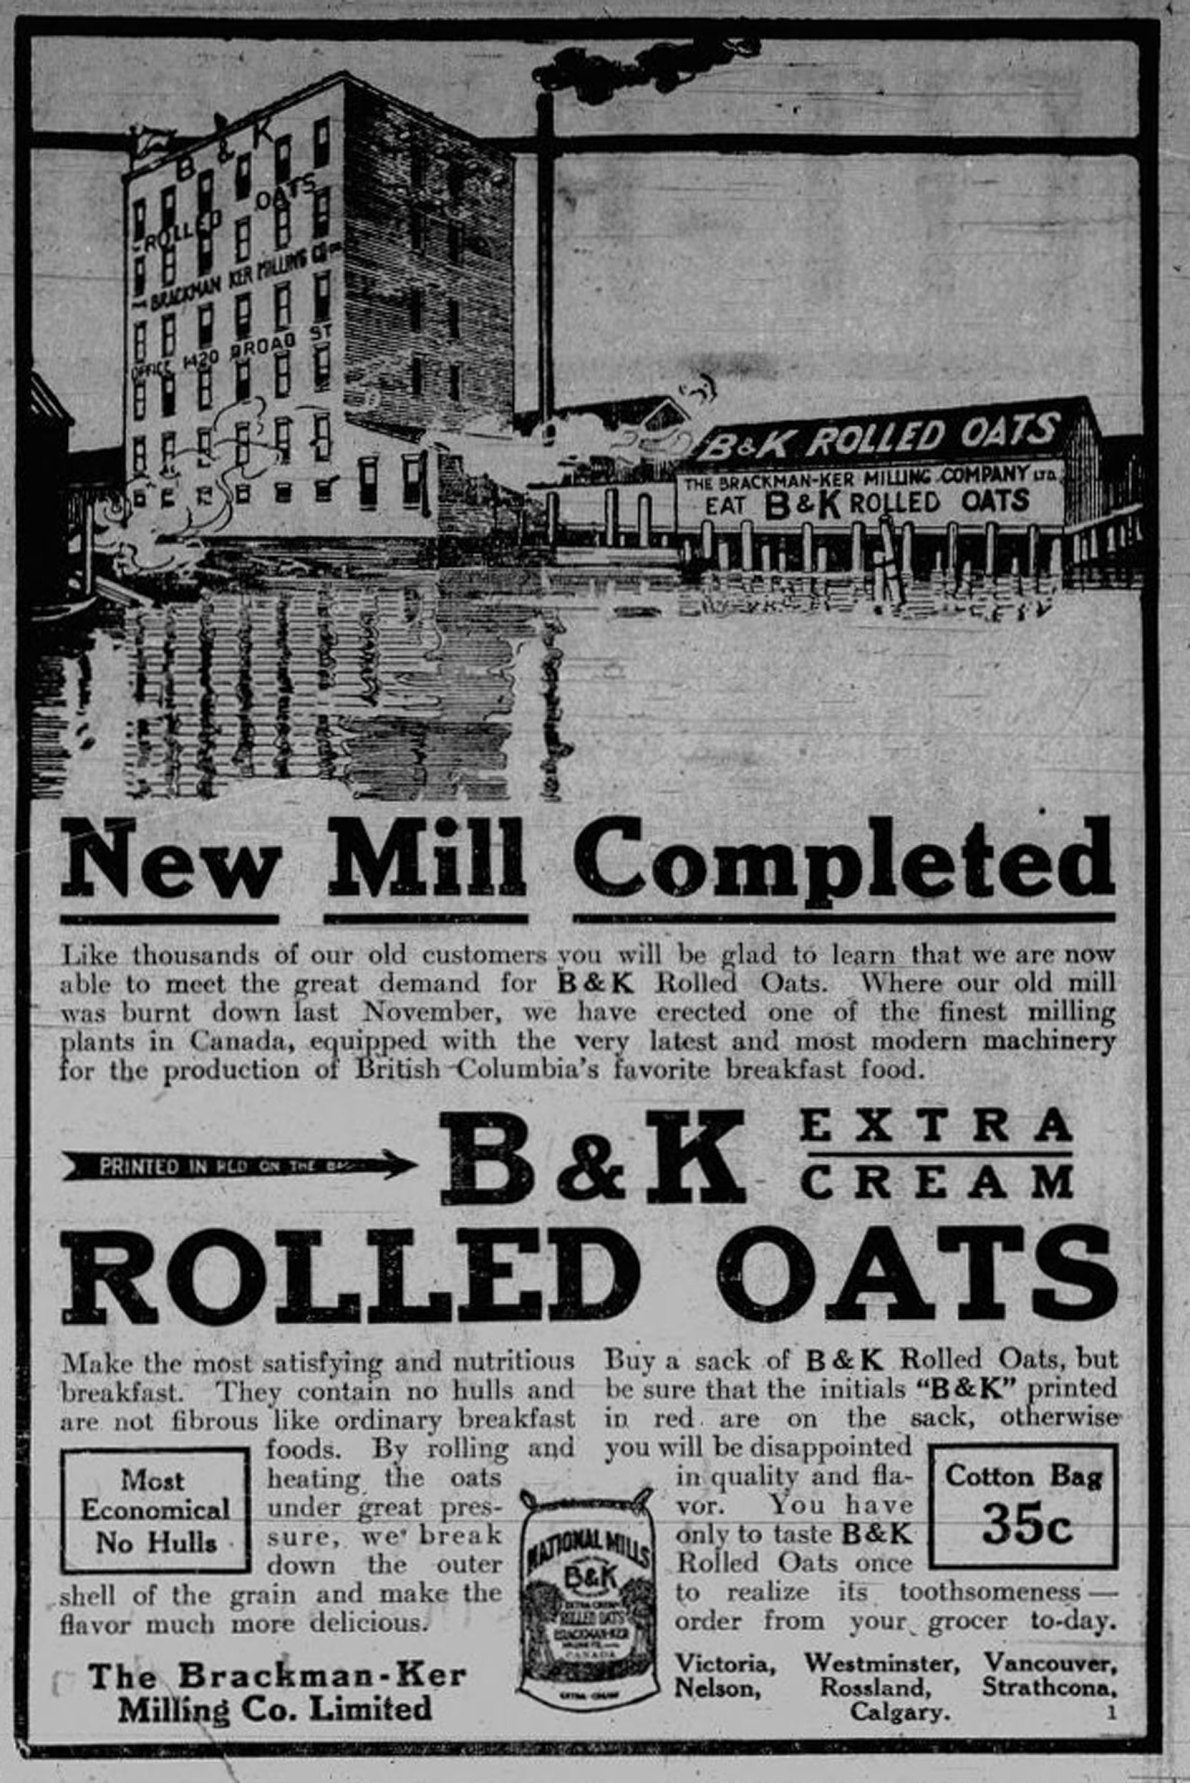 1910 advertisement for B&K Rolled Oats, made by the Brackman-Ker Milling Co., whose head office was at 1420 Broad Street in downtown Victoria. (Victoria Online Sightseeing Tours collection)